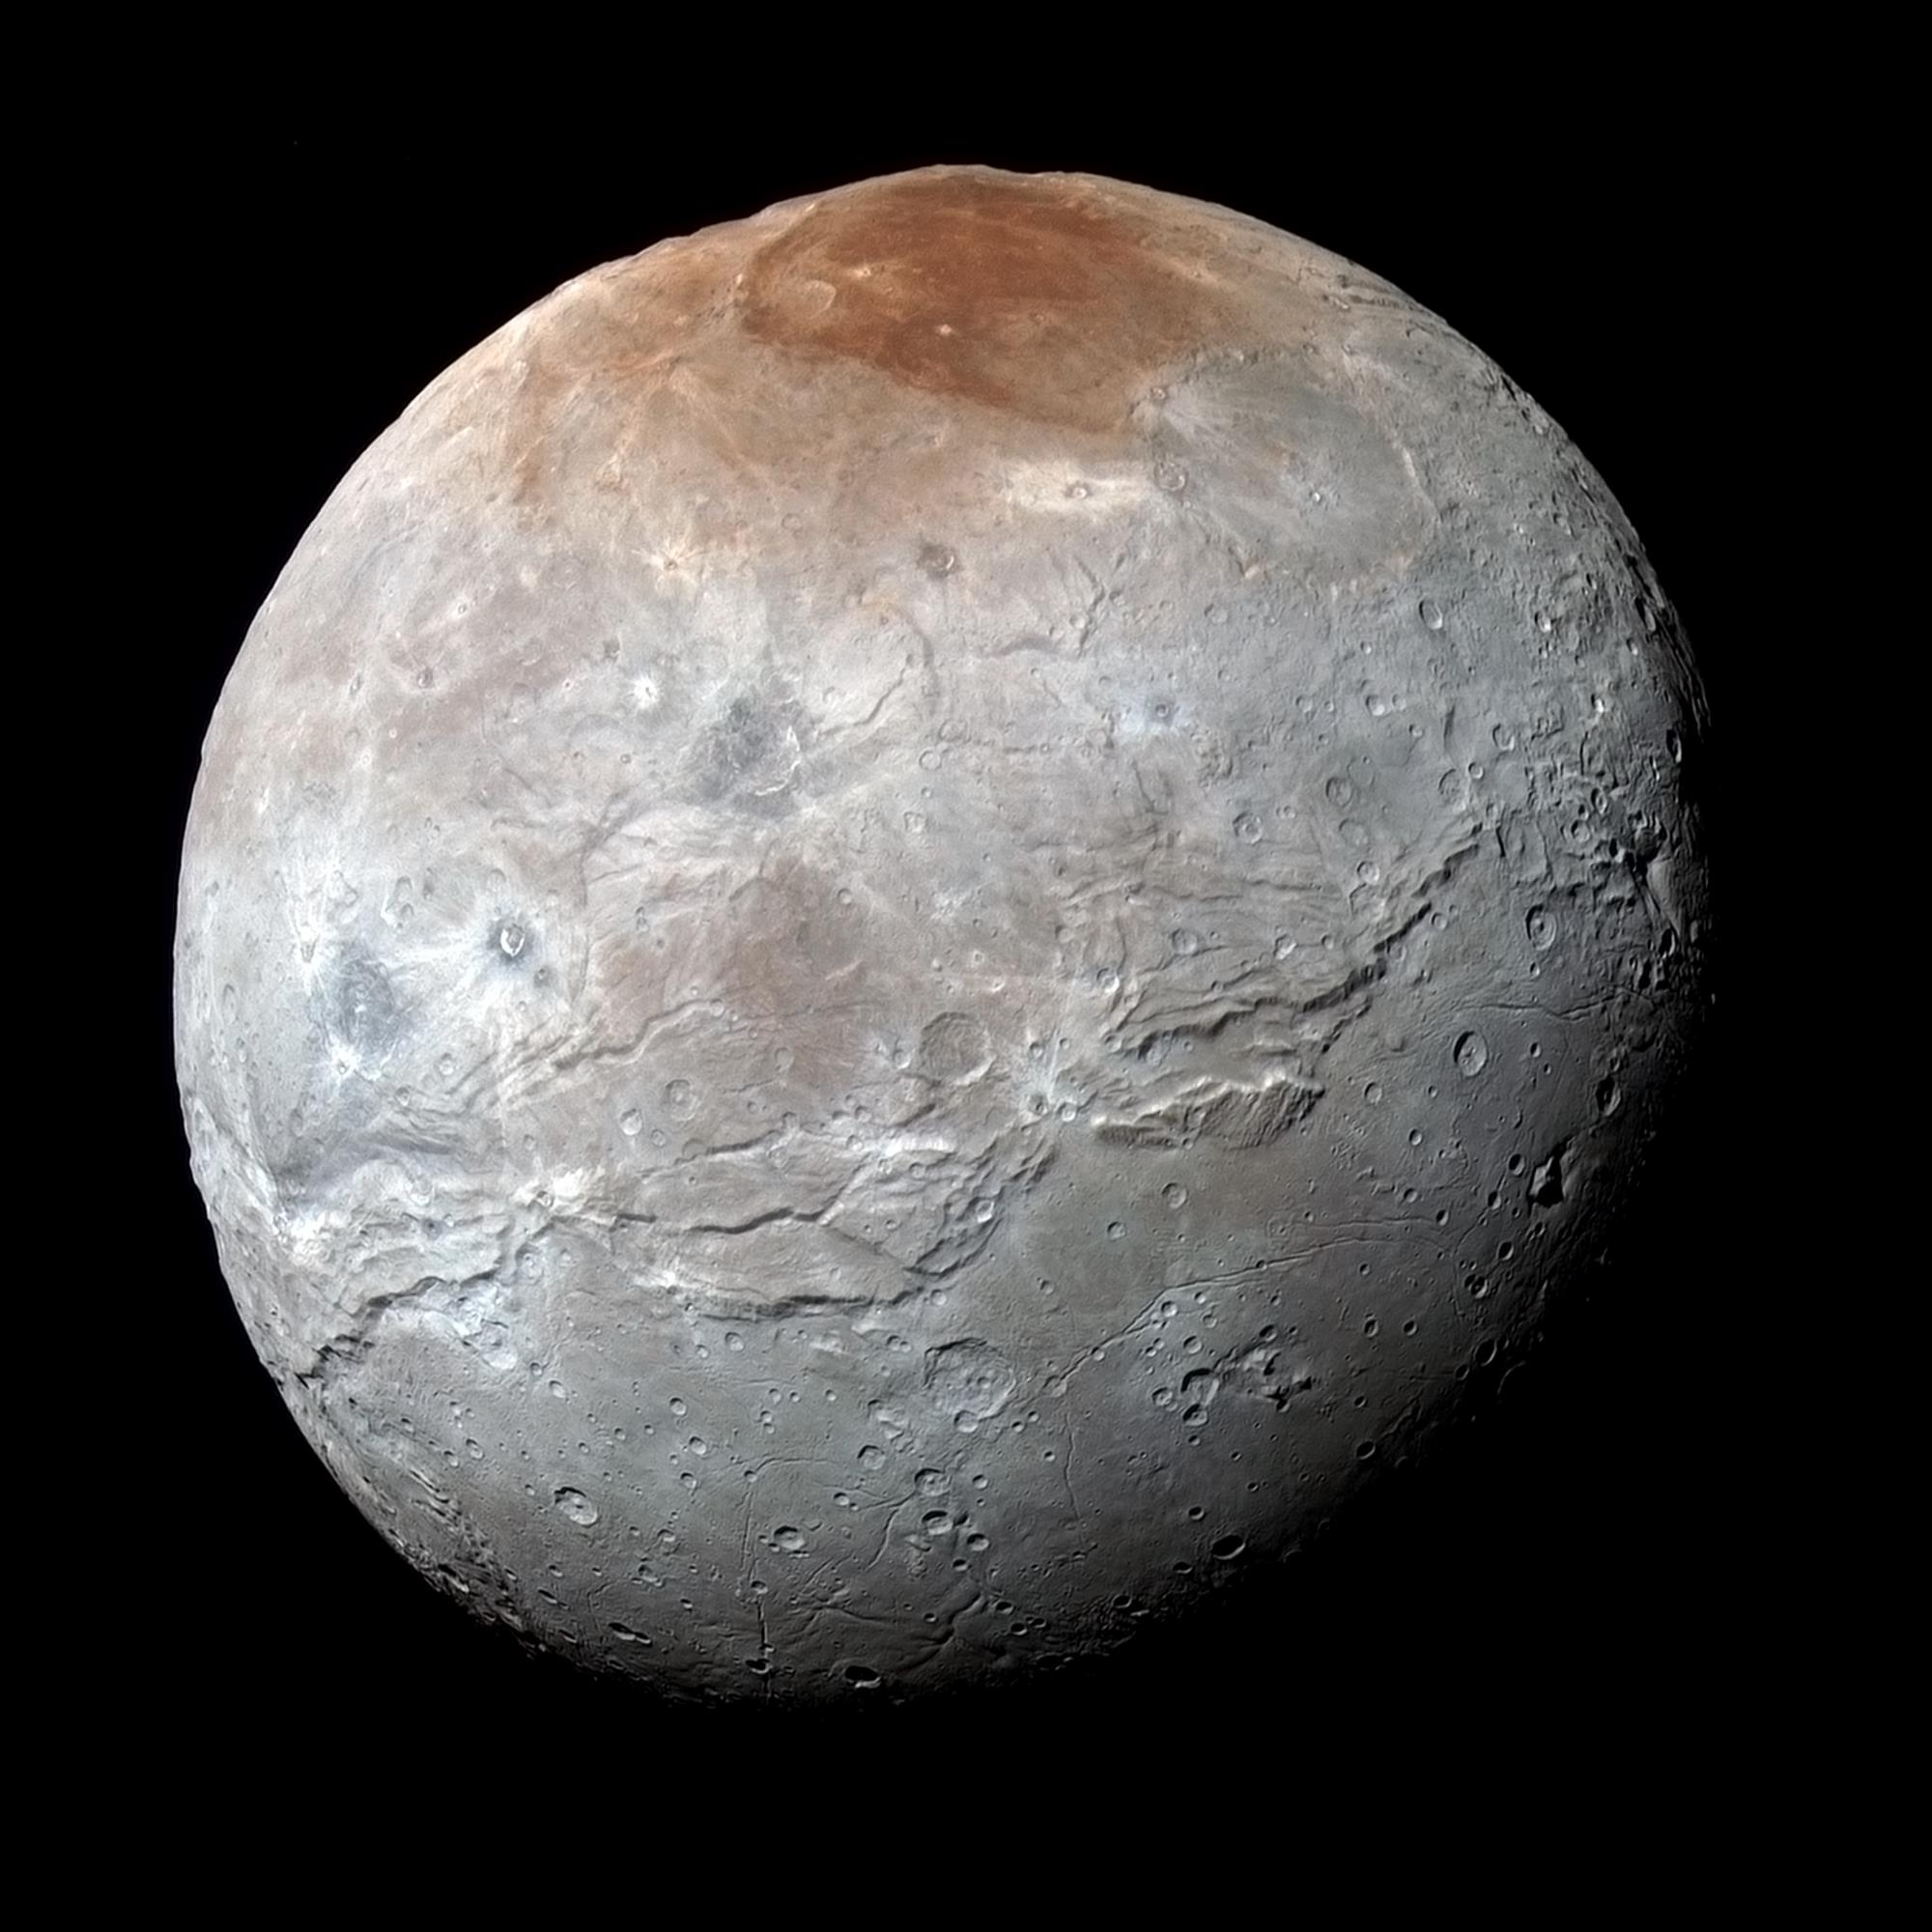 NASA's New Horizons spacecraft captured this high-resolution enhanced color view of Pluto's moon Charon just before closest approach on July 14, 2015. Charon's striking reddish north polar region is informally named Mordor Macula. – Image Credits: NASA/JHUAPL/SwRI